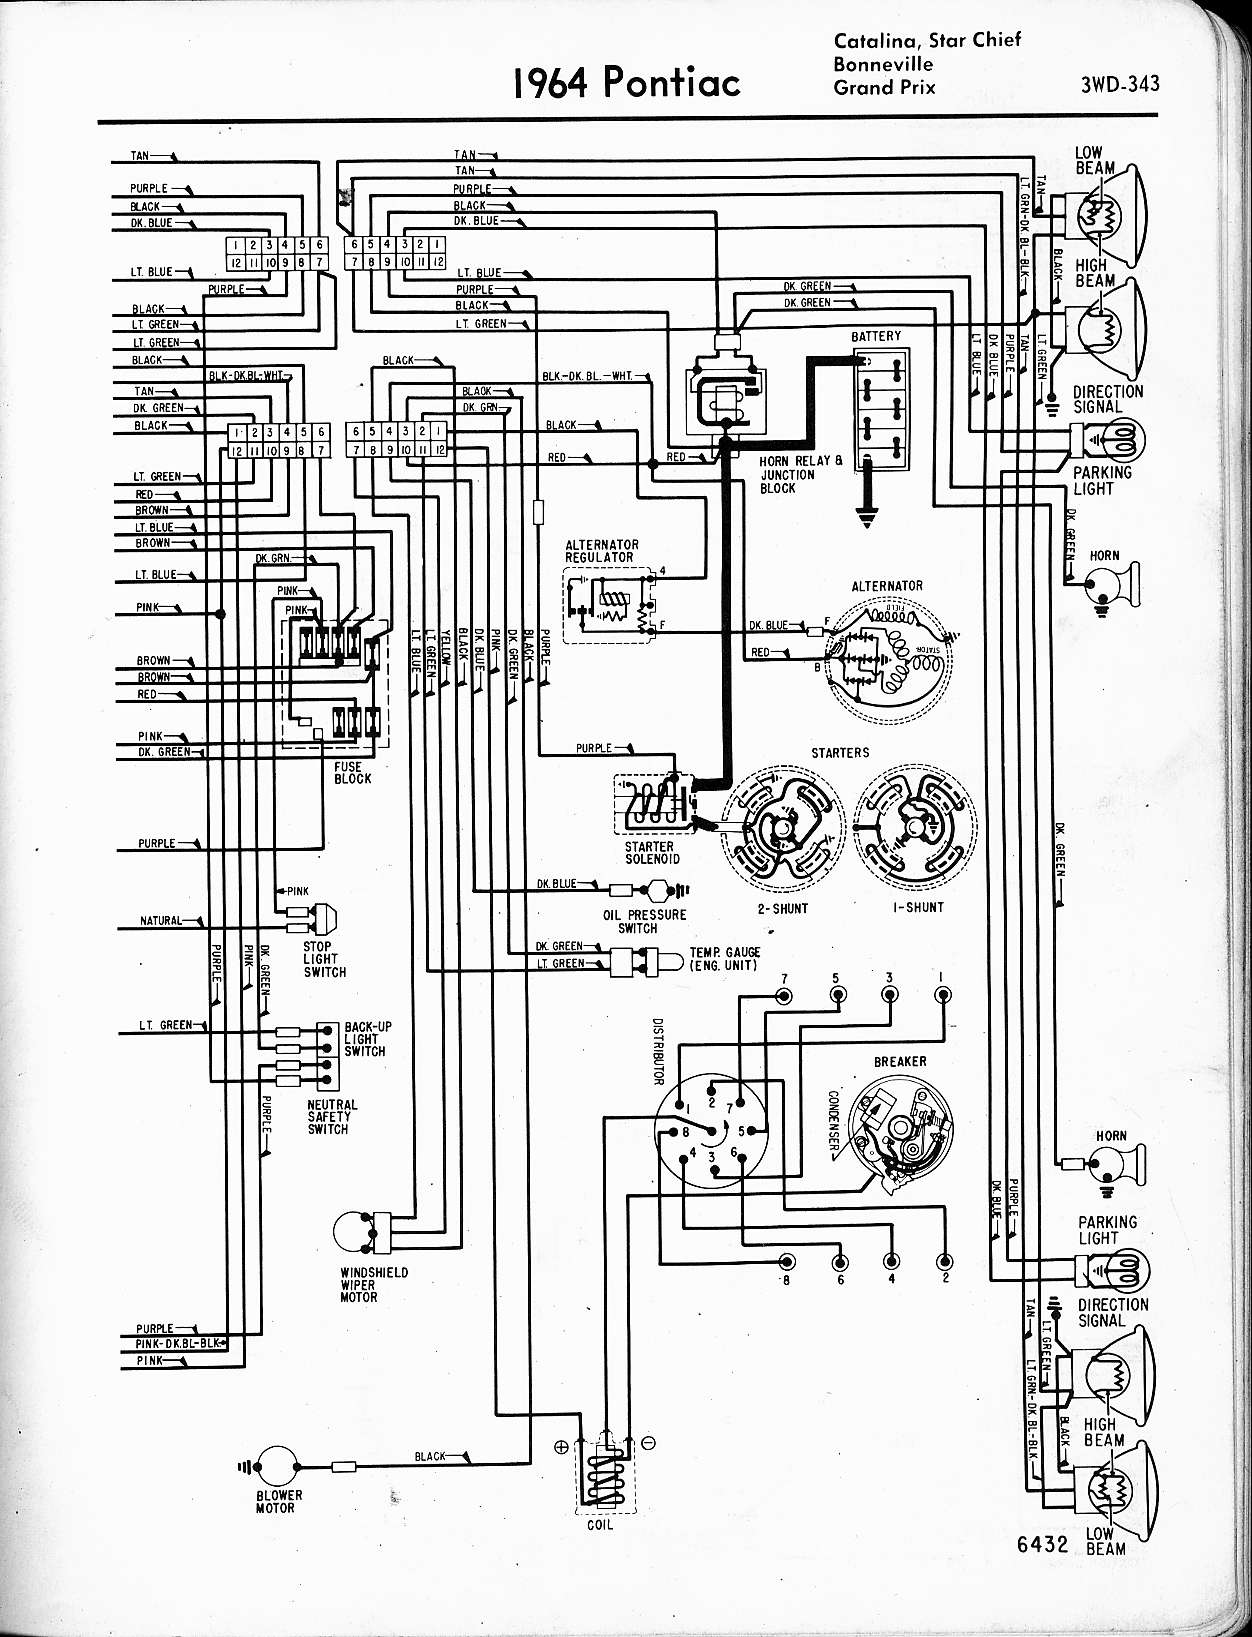 66 Gto Wiring Diagram - The Portal And Forum Of Wiring Diagram • Alternator Wiring Diagram With Voltage Regulator on high amp alternator wiring diagram, one wire alternator conversion wiring diagram, motorcycle alternator wiring diagram, brushless alternator wiring diagram, gm ignition switch wiring diagram, denso 210-0406 alternator wiring diagram, basic chevy alternator wiring diagram, alternator welder wiring diagram, chrysler alternator wiring diagram, alternator with external regulator wiring, ignition system wiring diagram, truck alternator wiring diagram, high performance alternator wiring diagram, toyota alternator wiring diagram, generator transfer switch wiring diagram, ls1 alternator wiring diagram, powermaster alternator wiring diagram, ceiling fan light switch wiring diagram, marine alternator wiring diagram, 12 volt voltage regulator diagram,